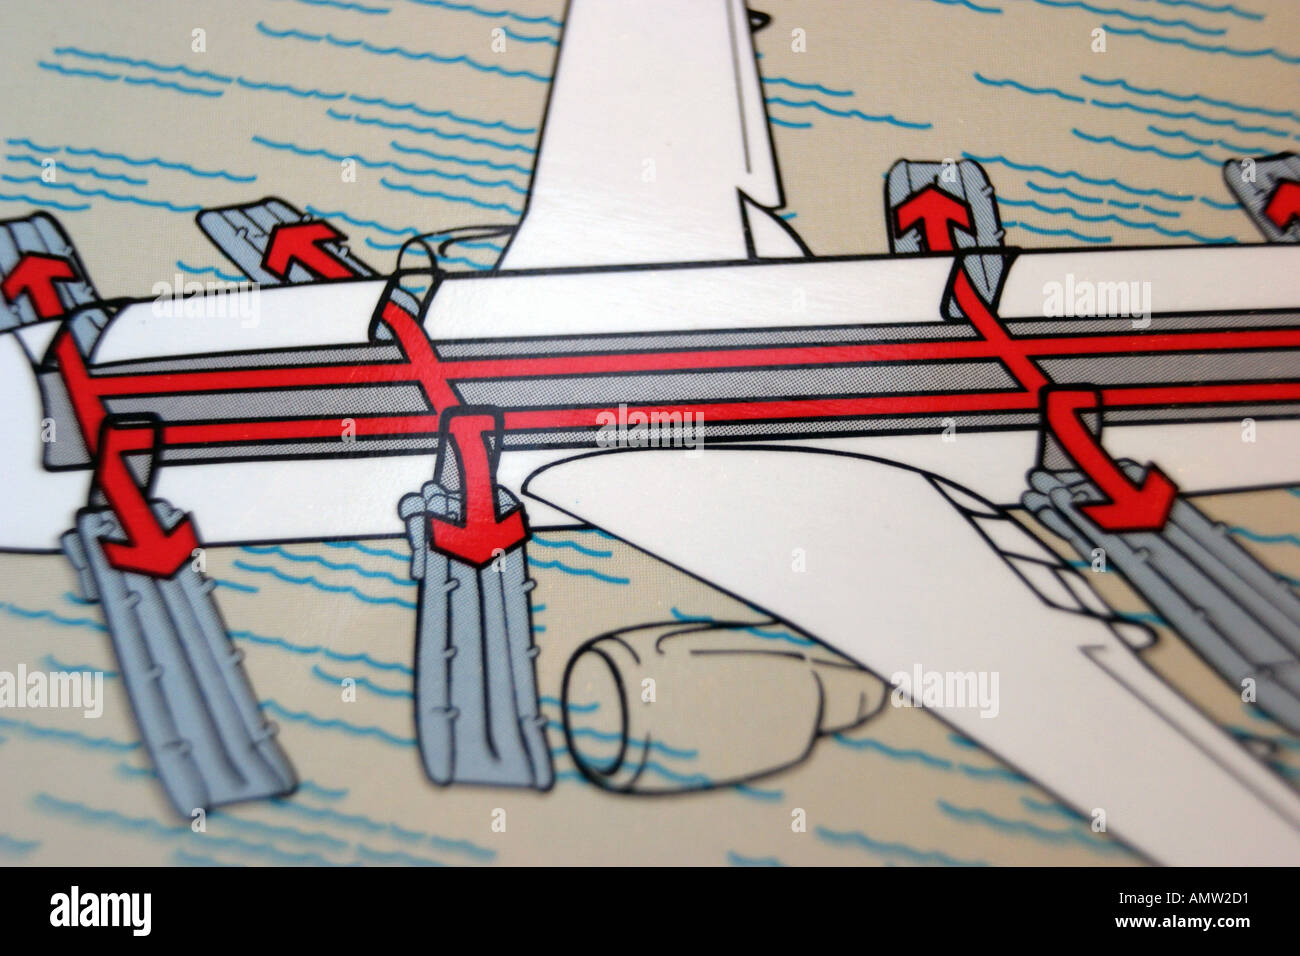 Emergency Exit Drawing Stockfotos & Emergency Exit Drawing Bilder ...